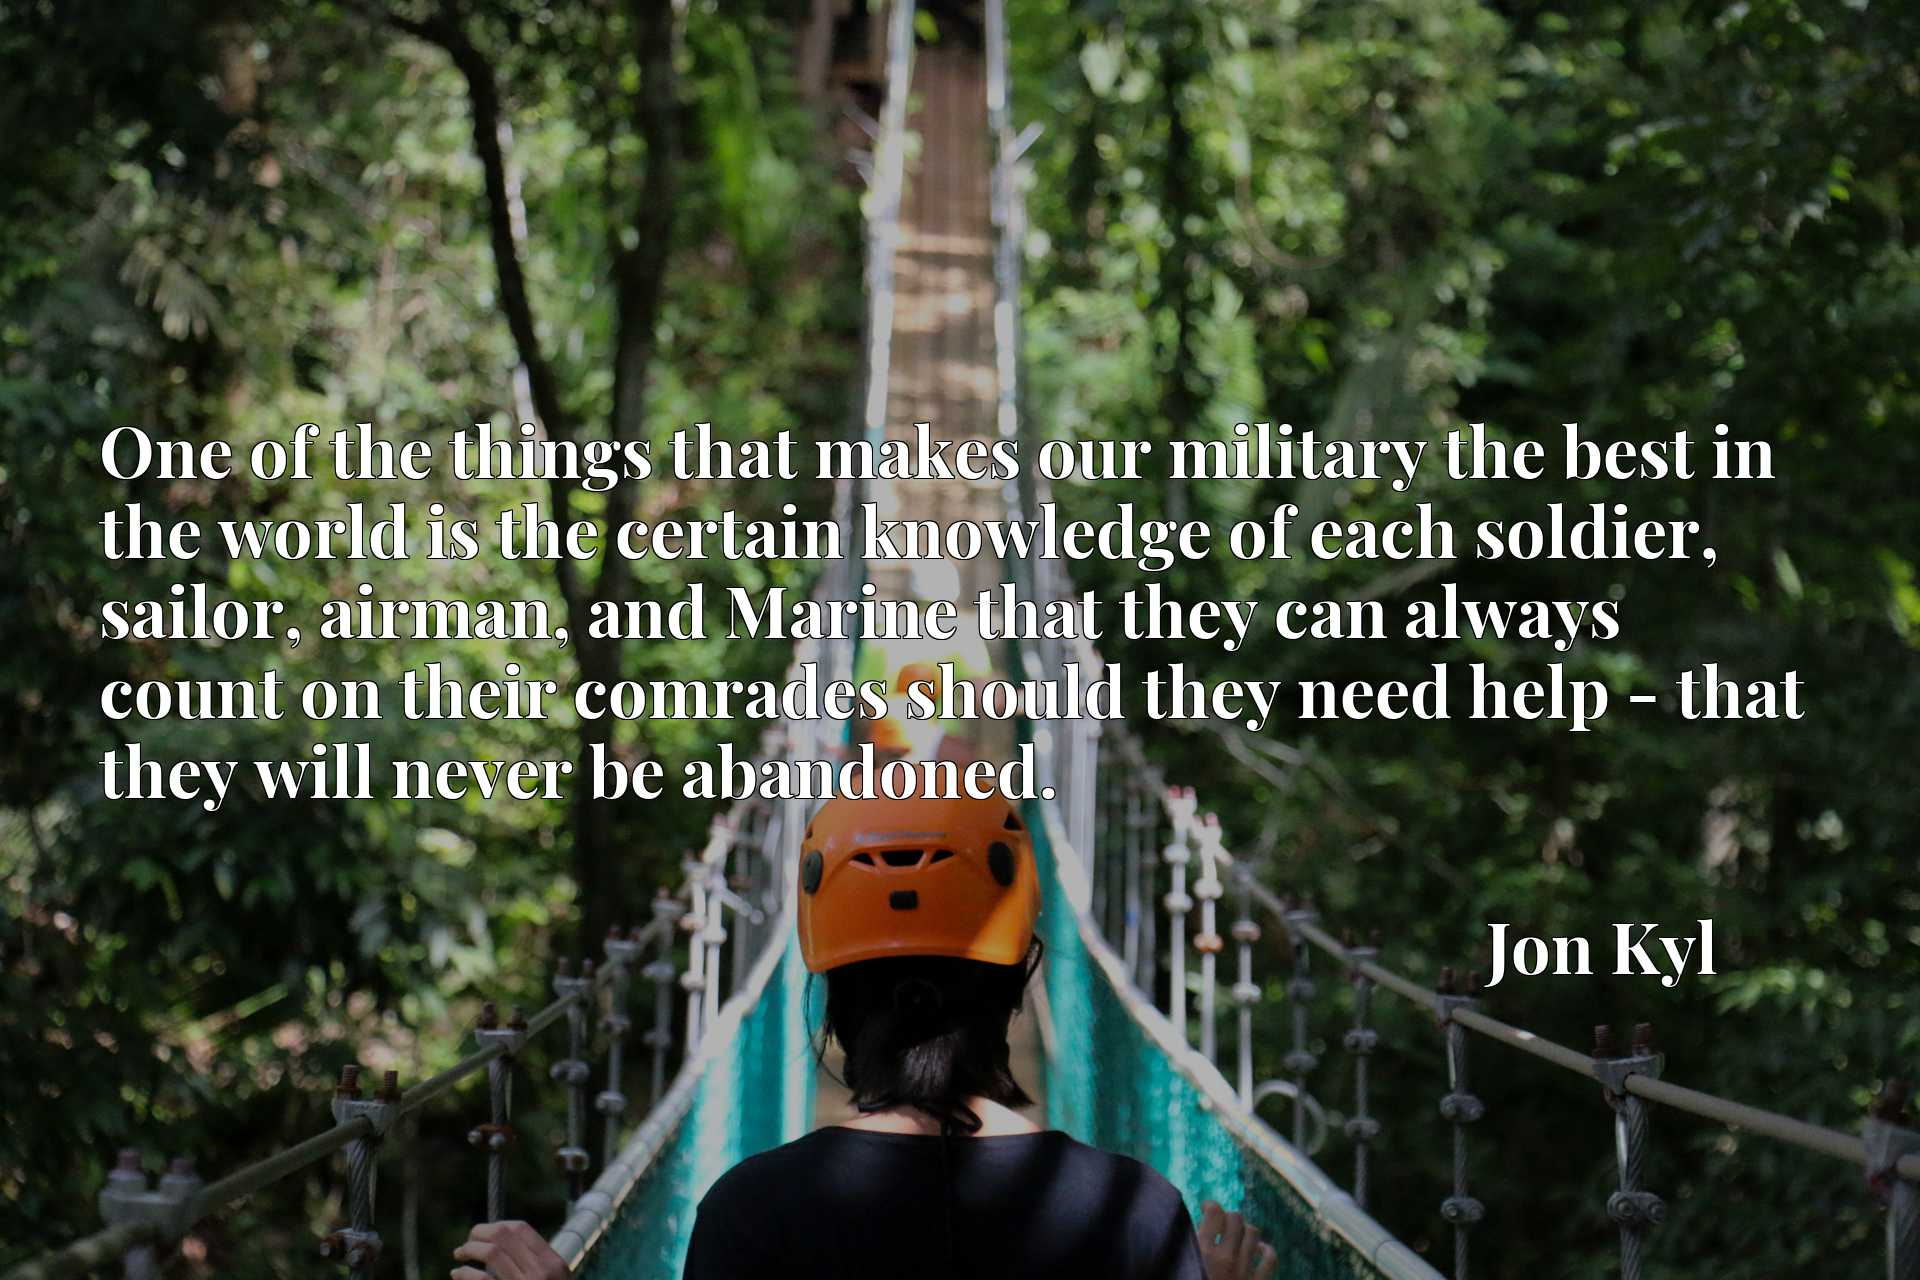 Quote Picture :One of the things that makes our military the best in the world is the certain knowledge of each soldier, sailor, airman, and Marine that they can always count on their comrades should they need help - that they will never be abandoned.